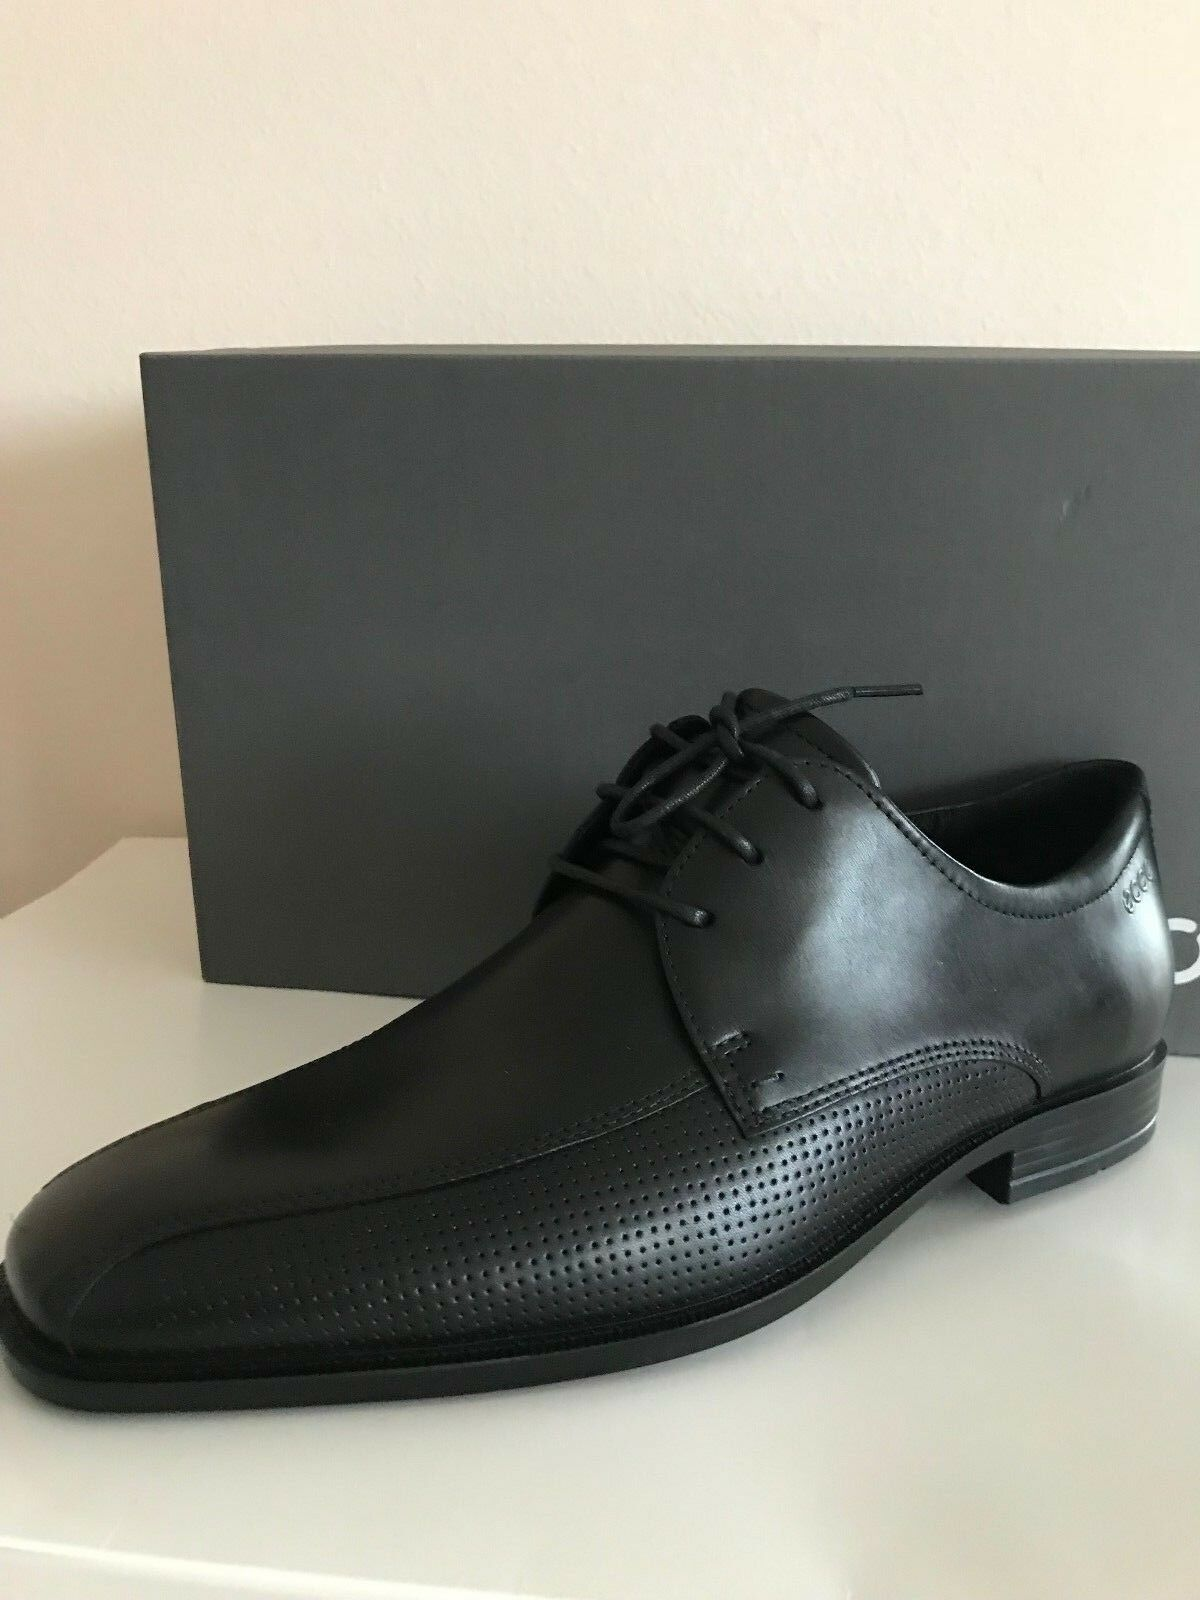 NEW ECCO EDINBURGH PERFORATED TIE OXFORD LACE MEN'S LEATHER SHOES BLACK